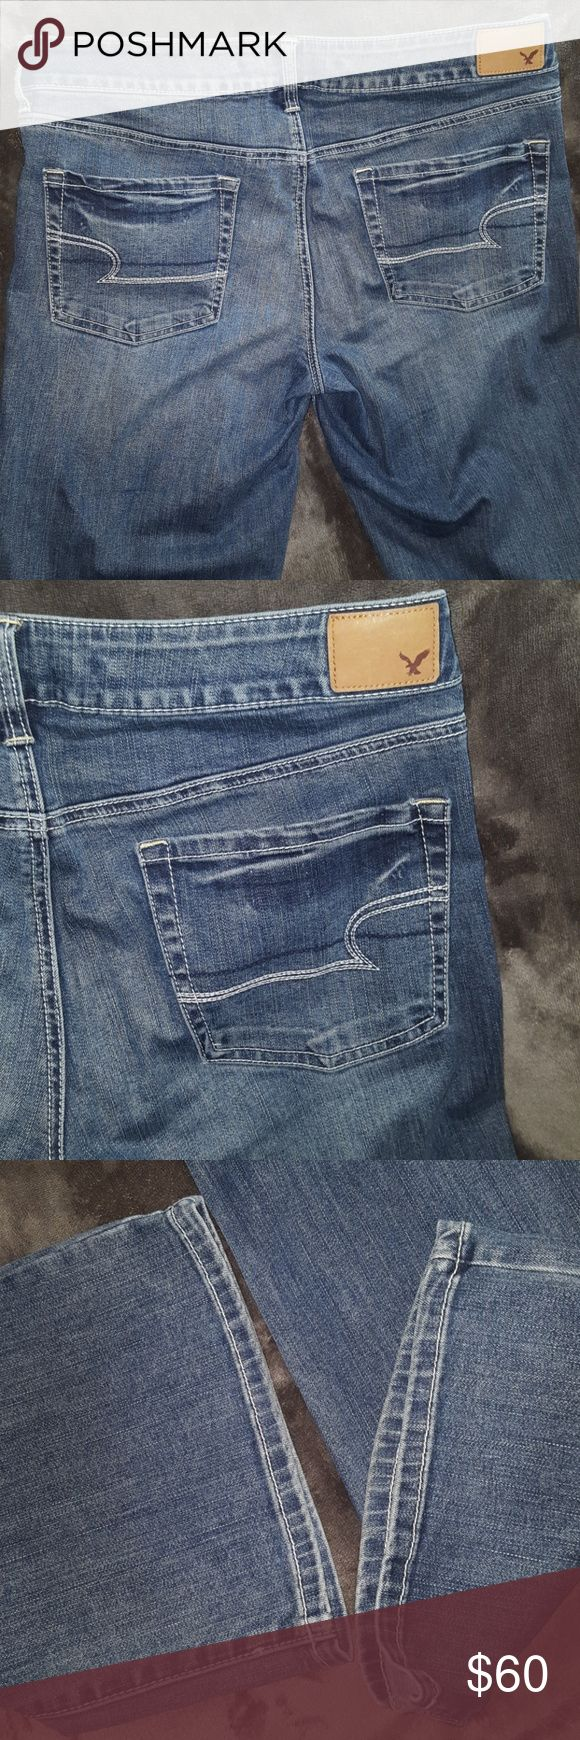 FAVORITE BOYFRIEND X LONG American Eagle Jeans NEW FAVORITE BOYFRIEND SUPER STRETCH AMERICAN EAGLE JEANS  New without Tags ~ Ladies size 12 X-LONG LENGTH ~ 71% cotton 15% viscose 12% polyester 2% elastane. Medium wash Jeans with the lighter whiskered effects in front and legs. Perfect for casual or dressy wear. I ship daily. Rise: about 10 inches Inseam: about 35.5 inches American Eagle Outfitters Jeans Boyfriend